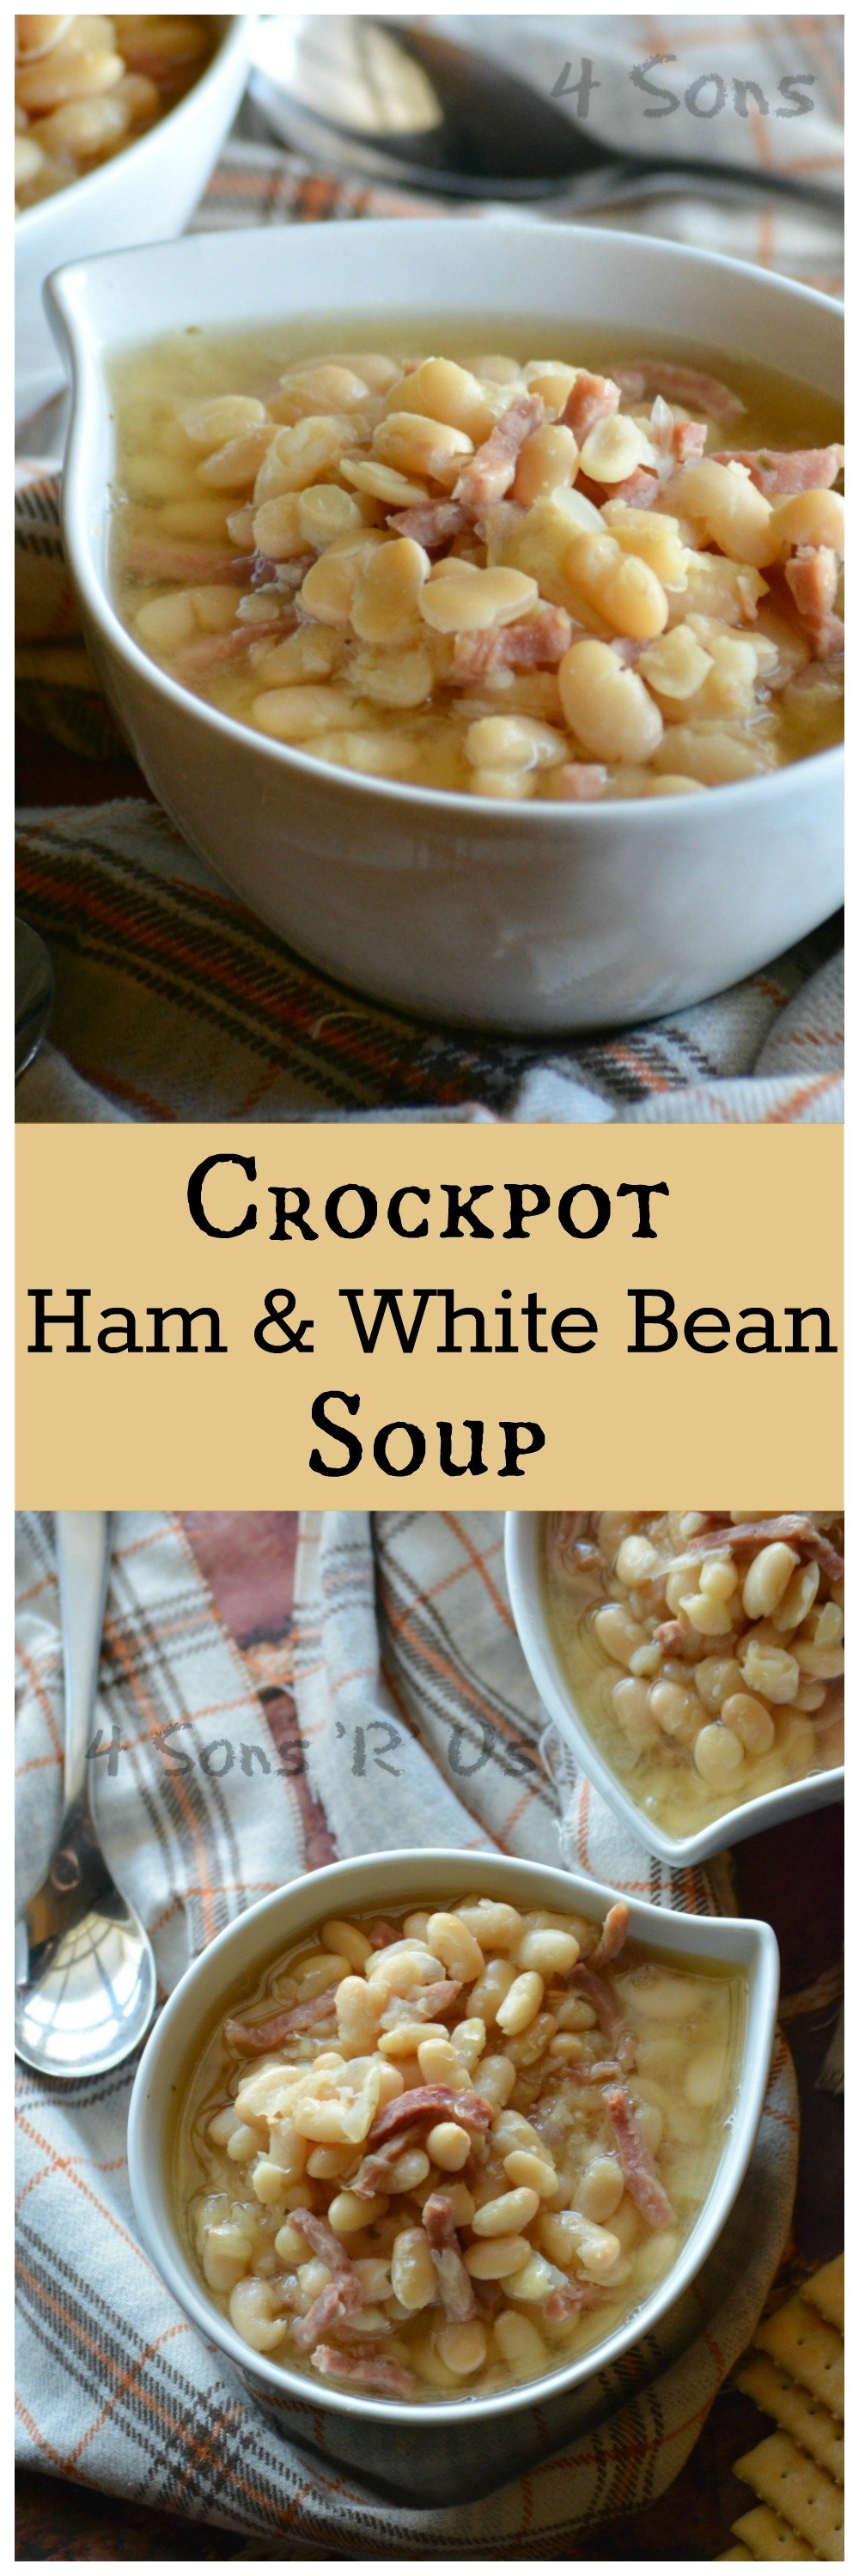 This Crockpot Ham & White Bean Soup is an easier, set it and forget it, variation of the classic. It's super simple with a very short ingredient list. It makes it quite a delightful surprise when you first dig in and discover just how incredibly flavorful it is.